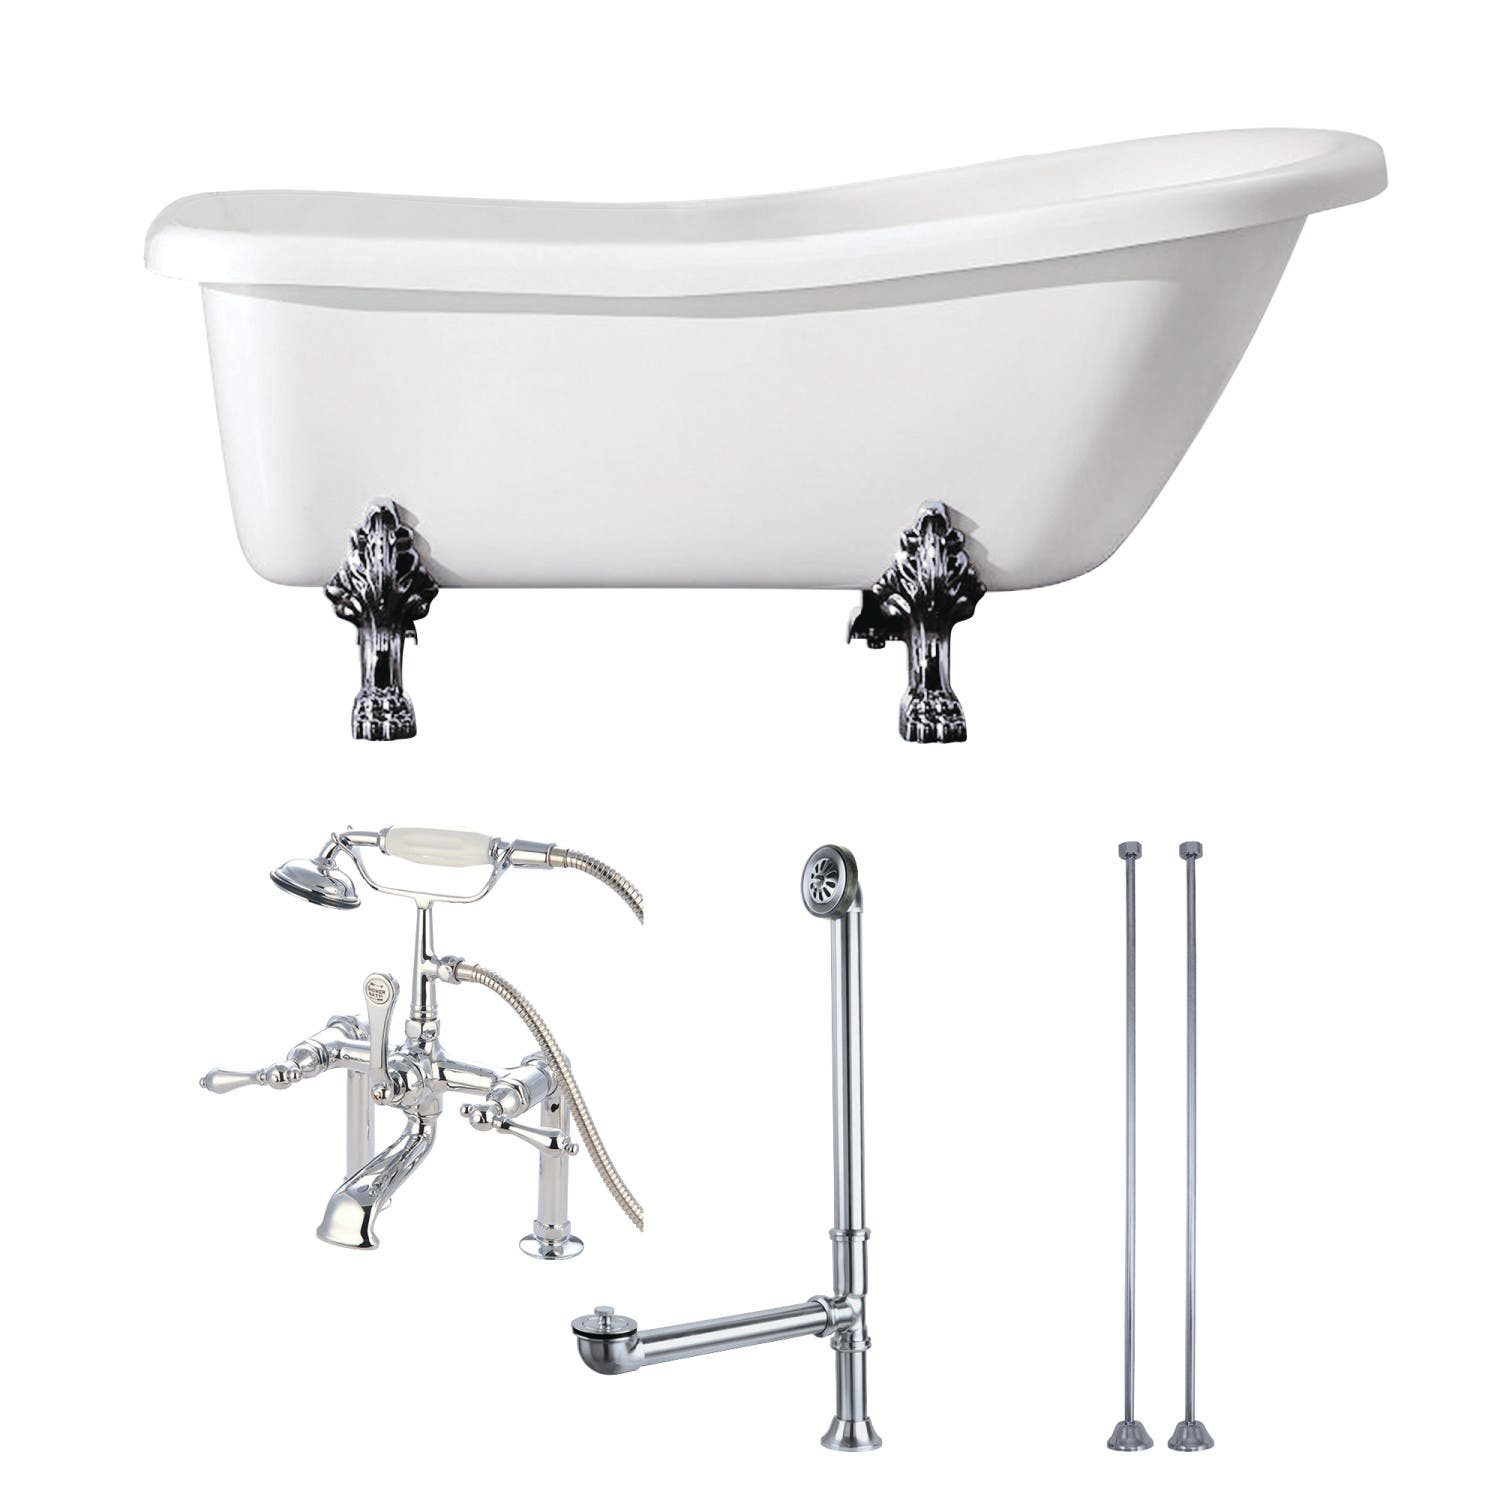 Clawfoot Tub Supply Lines.Aqua Eden Kvtde692823c1 67 Inch Acrylic Single Slipper Clawfoot Tub Combo With Faucet And Supply Lines White Polished Chrome